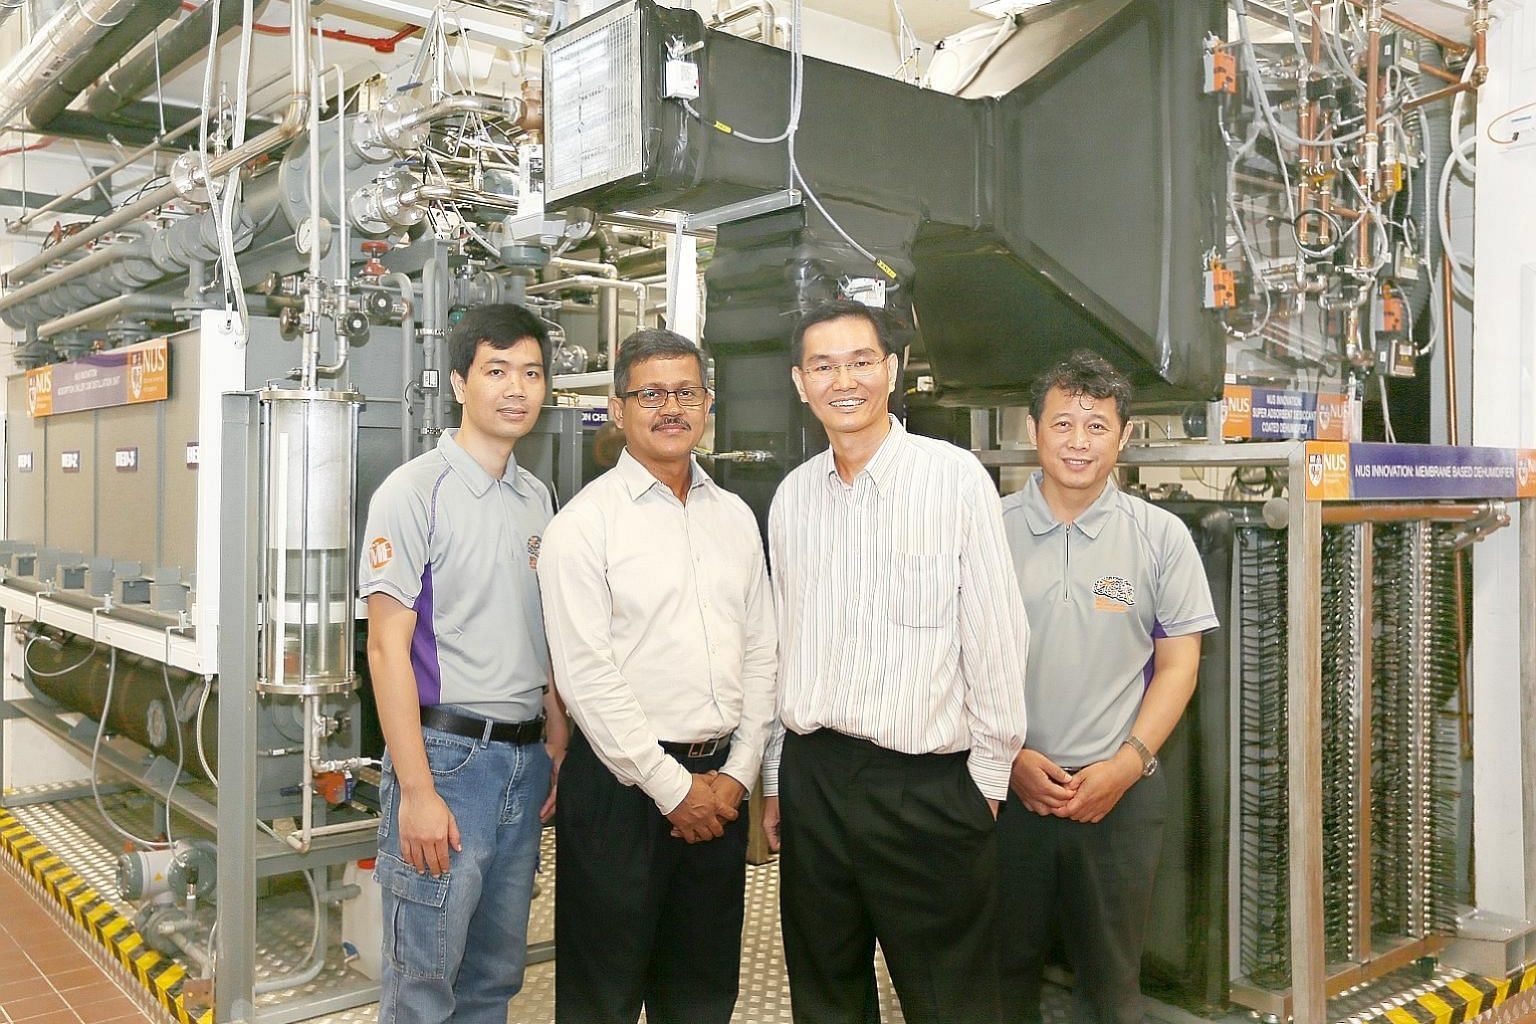 Members of the NUS engineering team behind the quad-generation plant (from left) Dr Bui Duc Thuan, research fellow; Dr Md Raisul Islam, senior lecturer; Associate Professor Ernest Chua; and Dr M Kum Ja, senior research fellow.